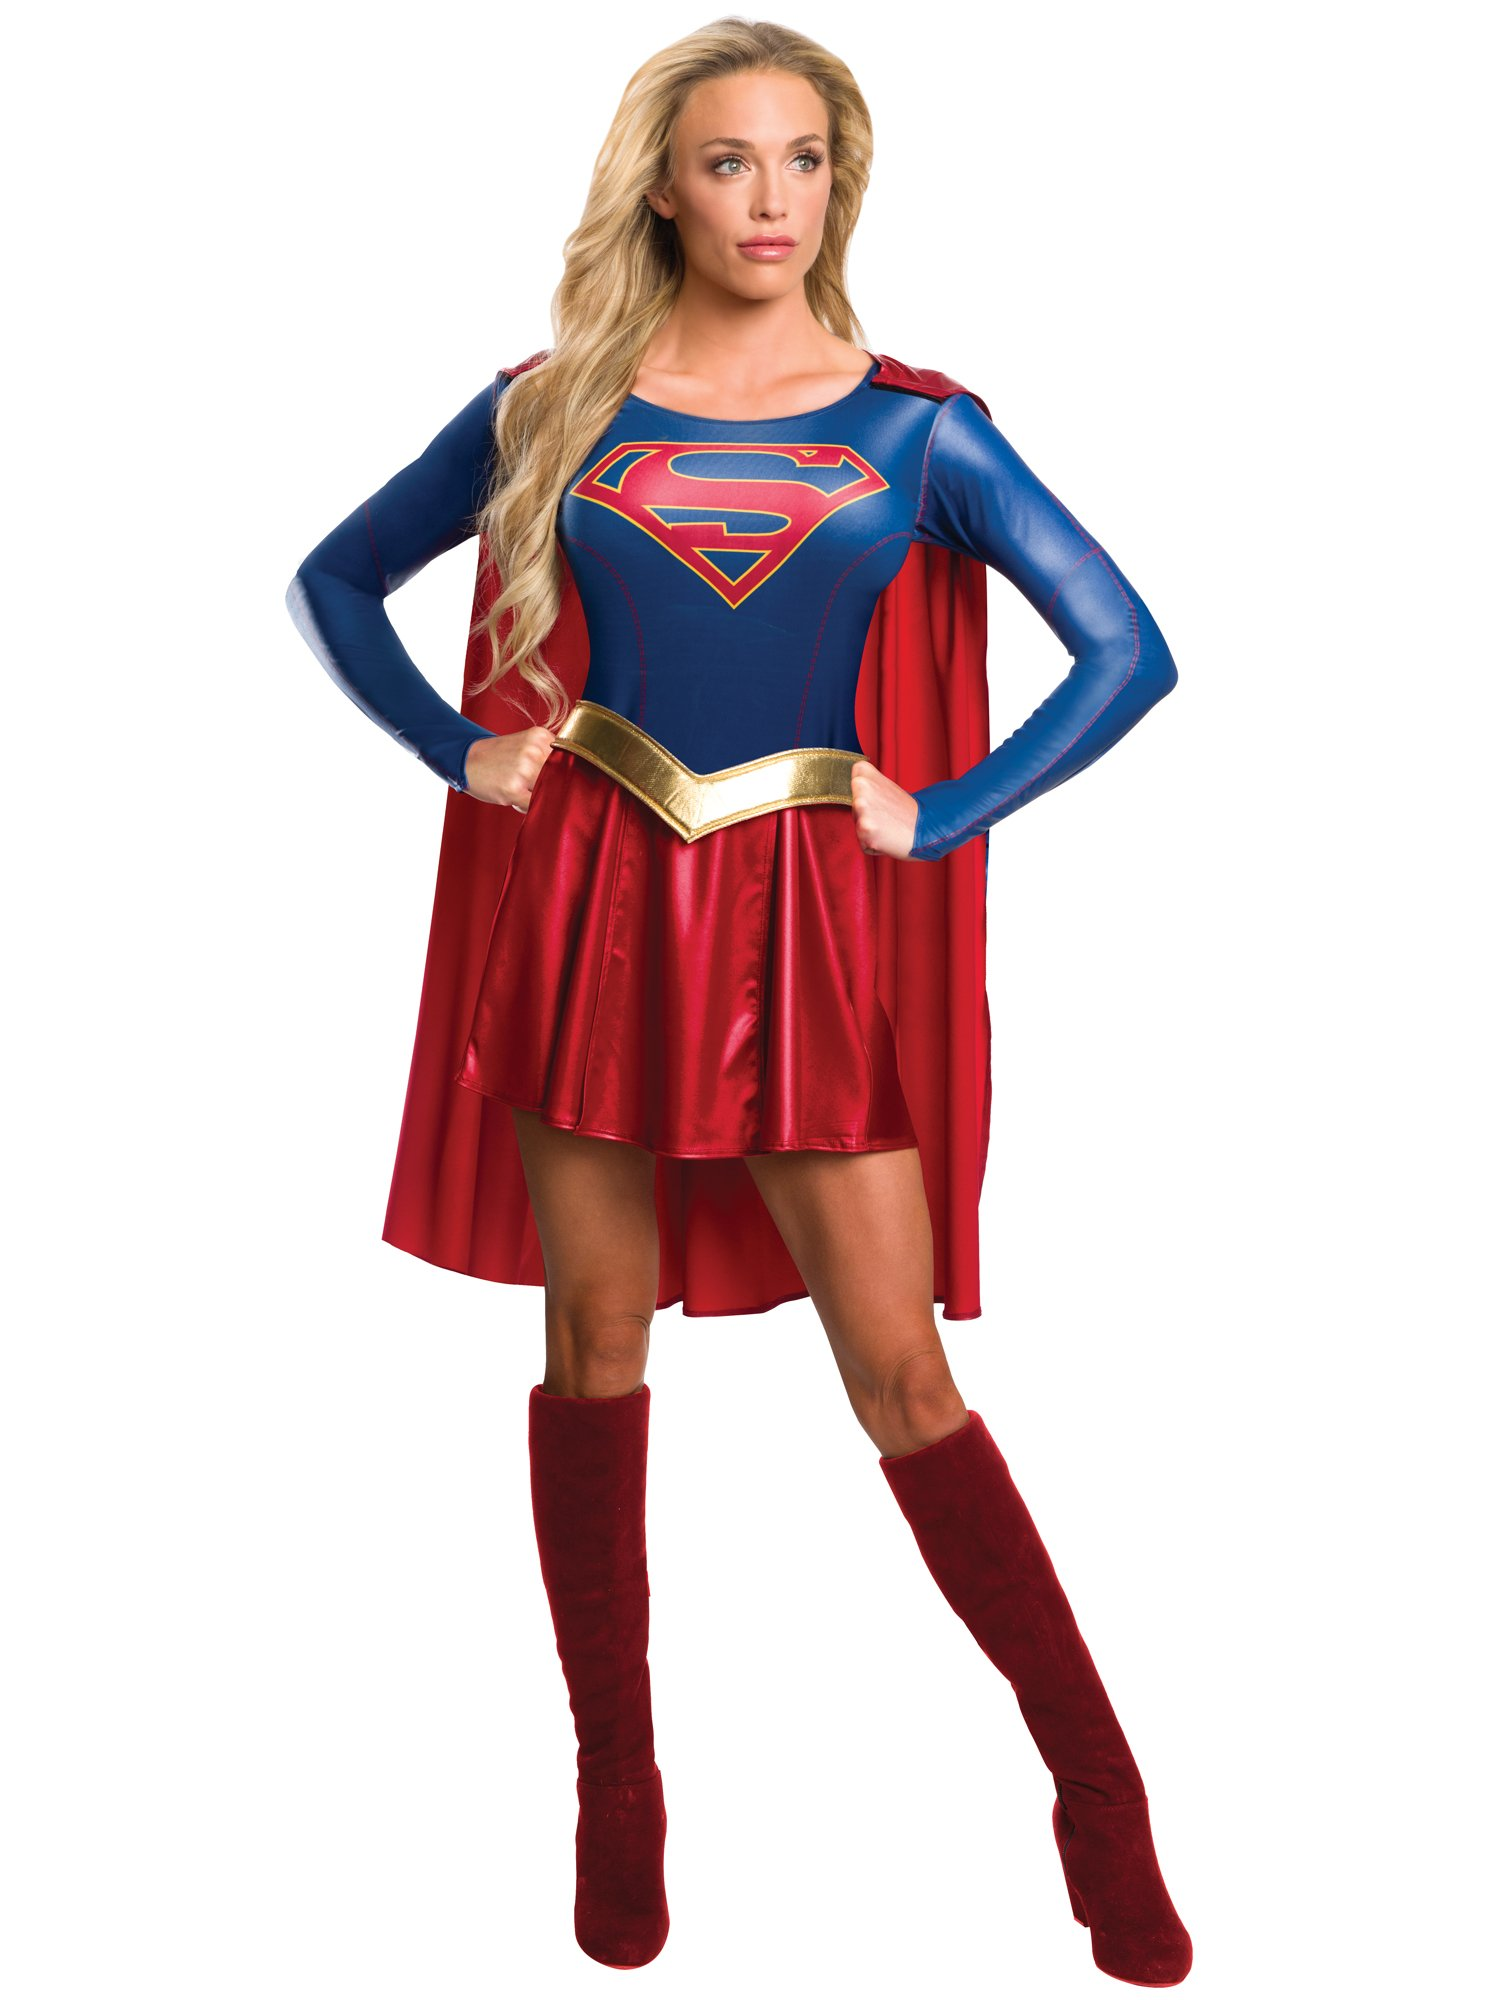 Rubie's Women's Supergirl TV Show Costume Dress, Multi, Small